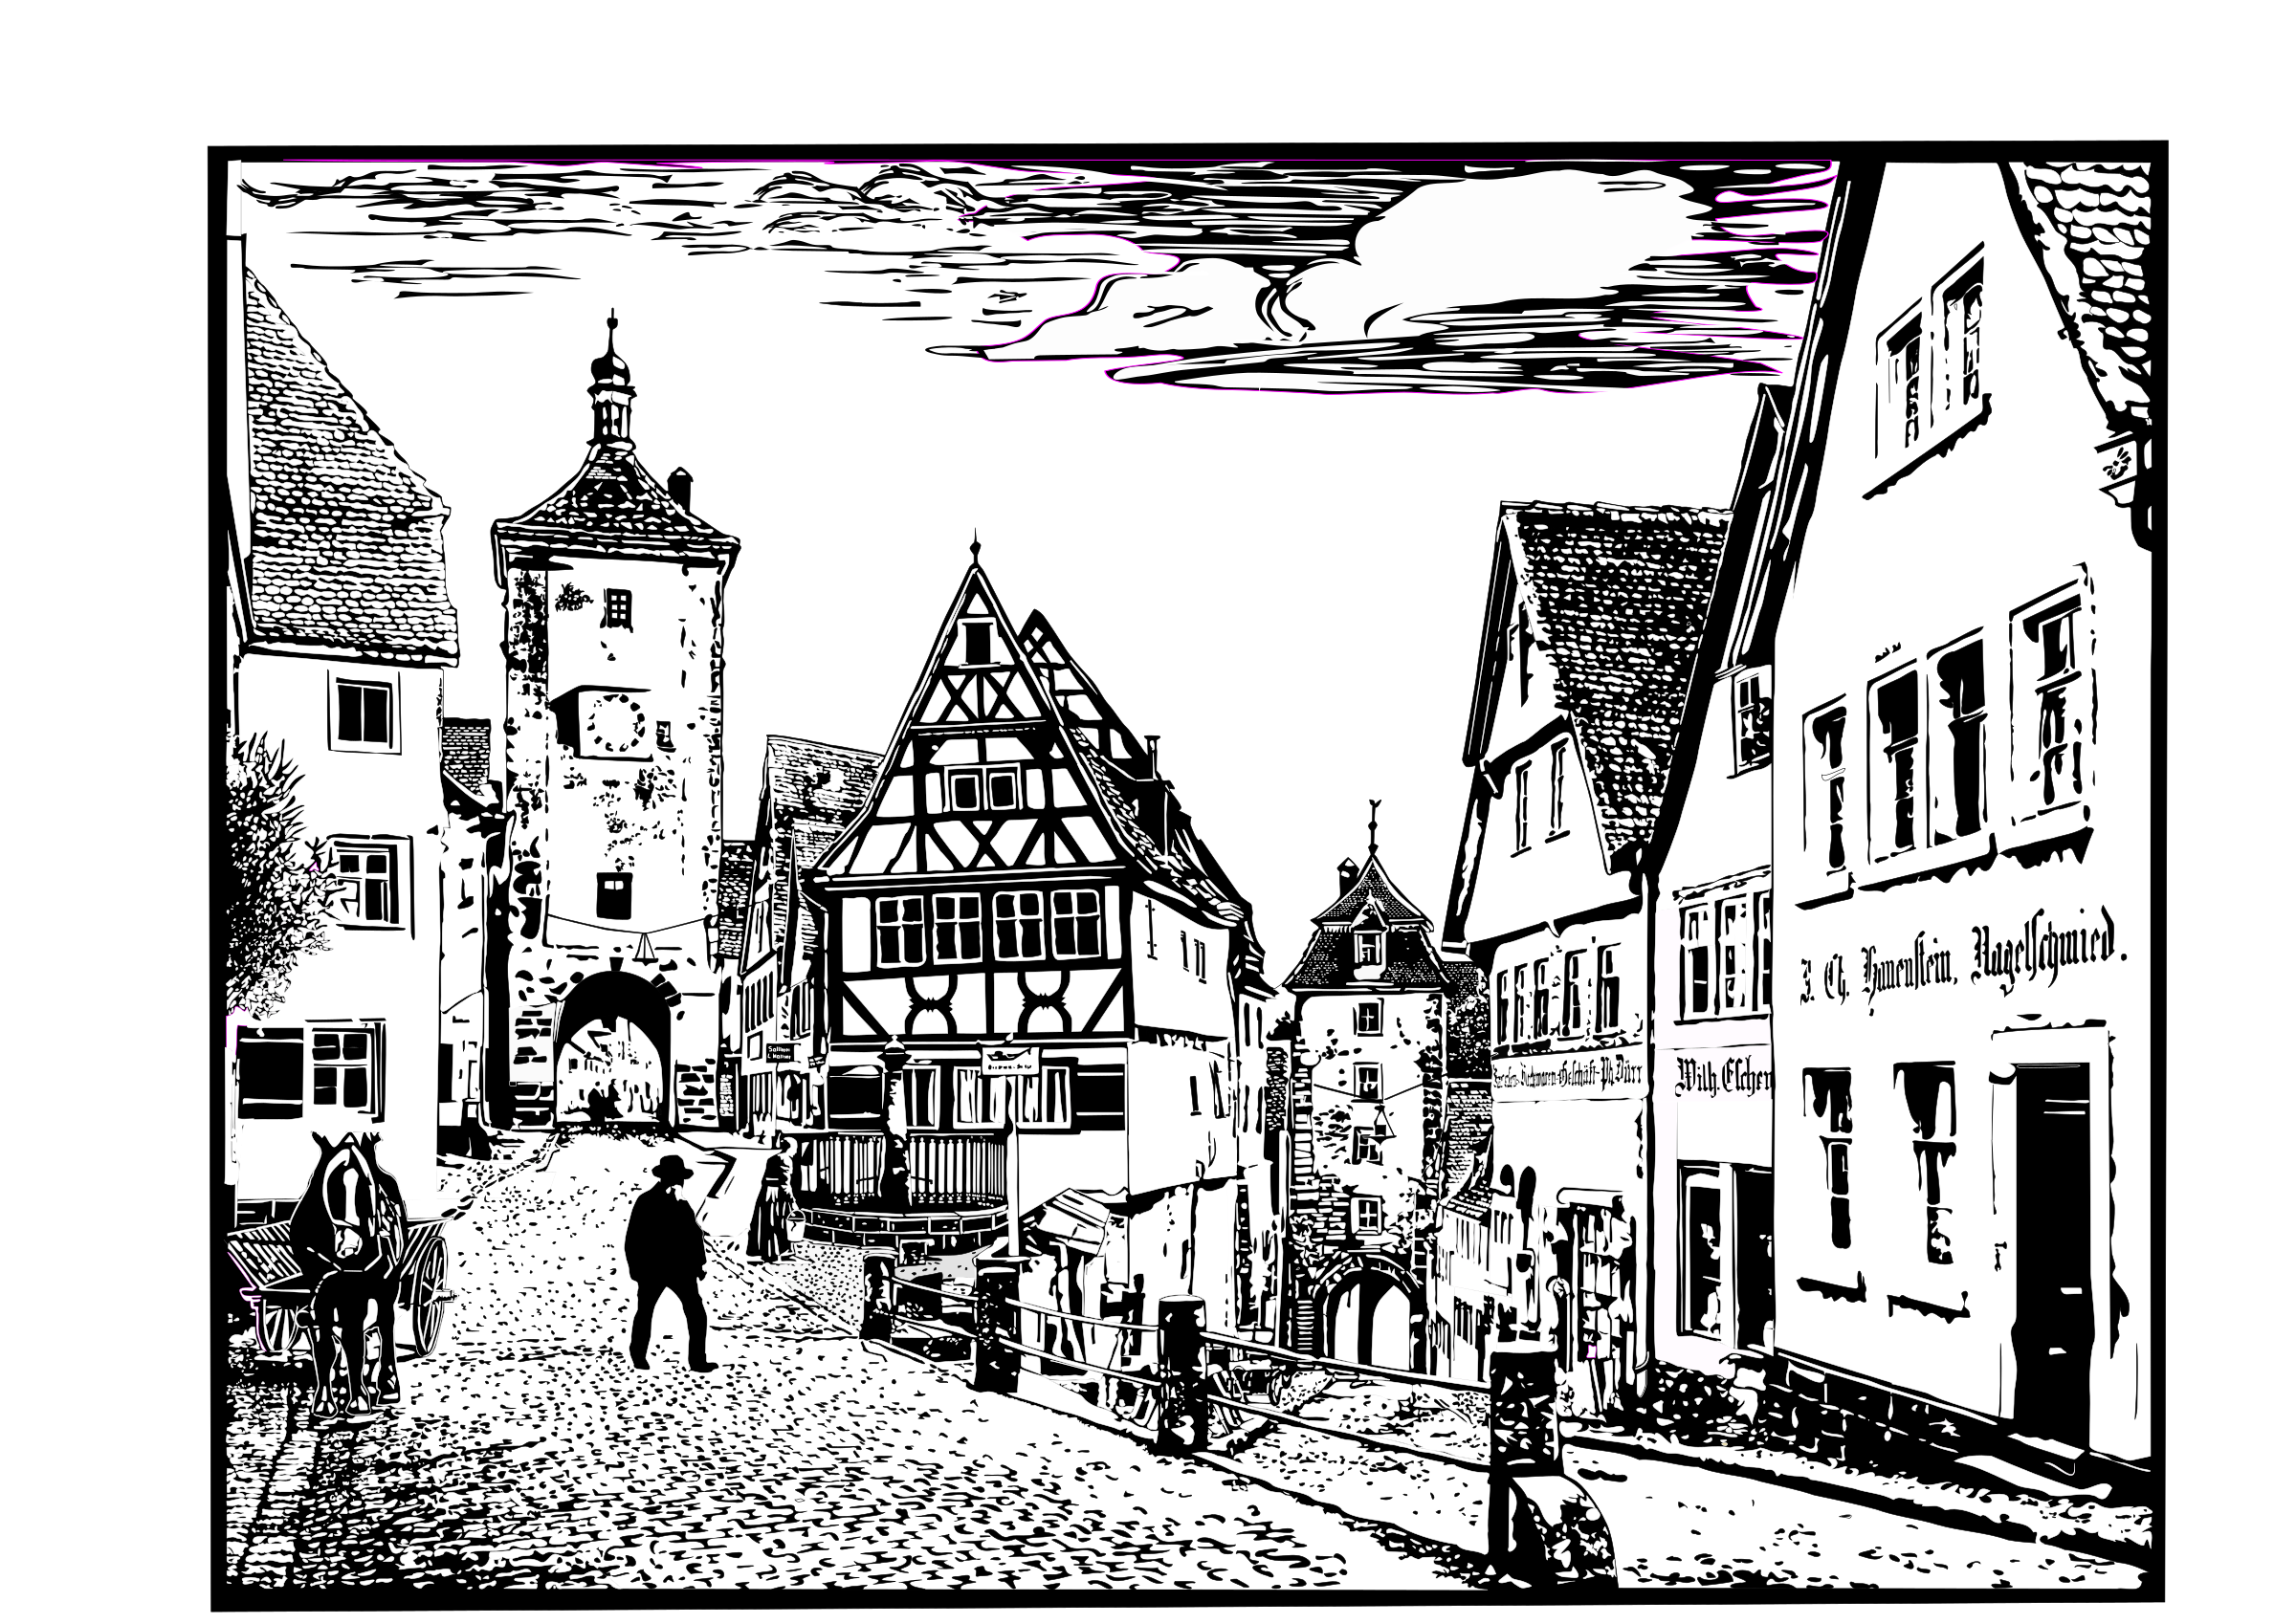 Cityscape of Rothenburg, Germany by Helm42